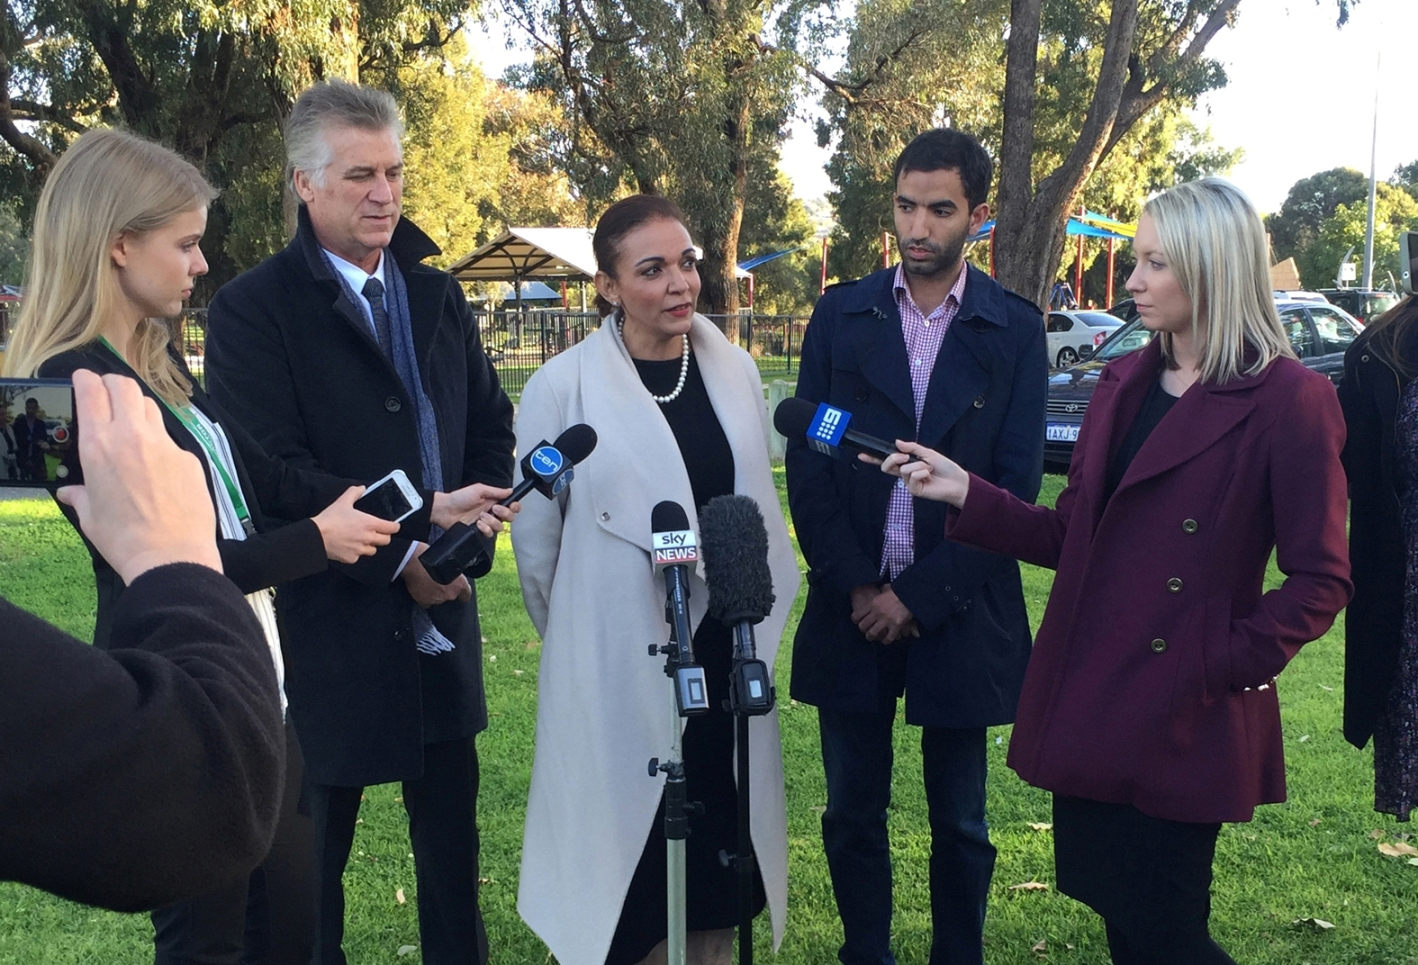 Labor candidate Anne Aly claims victory for Cowan seat.